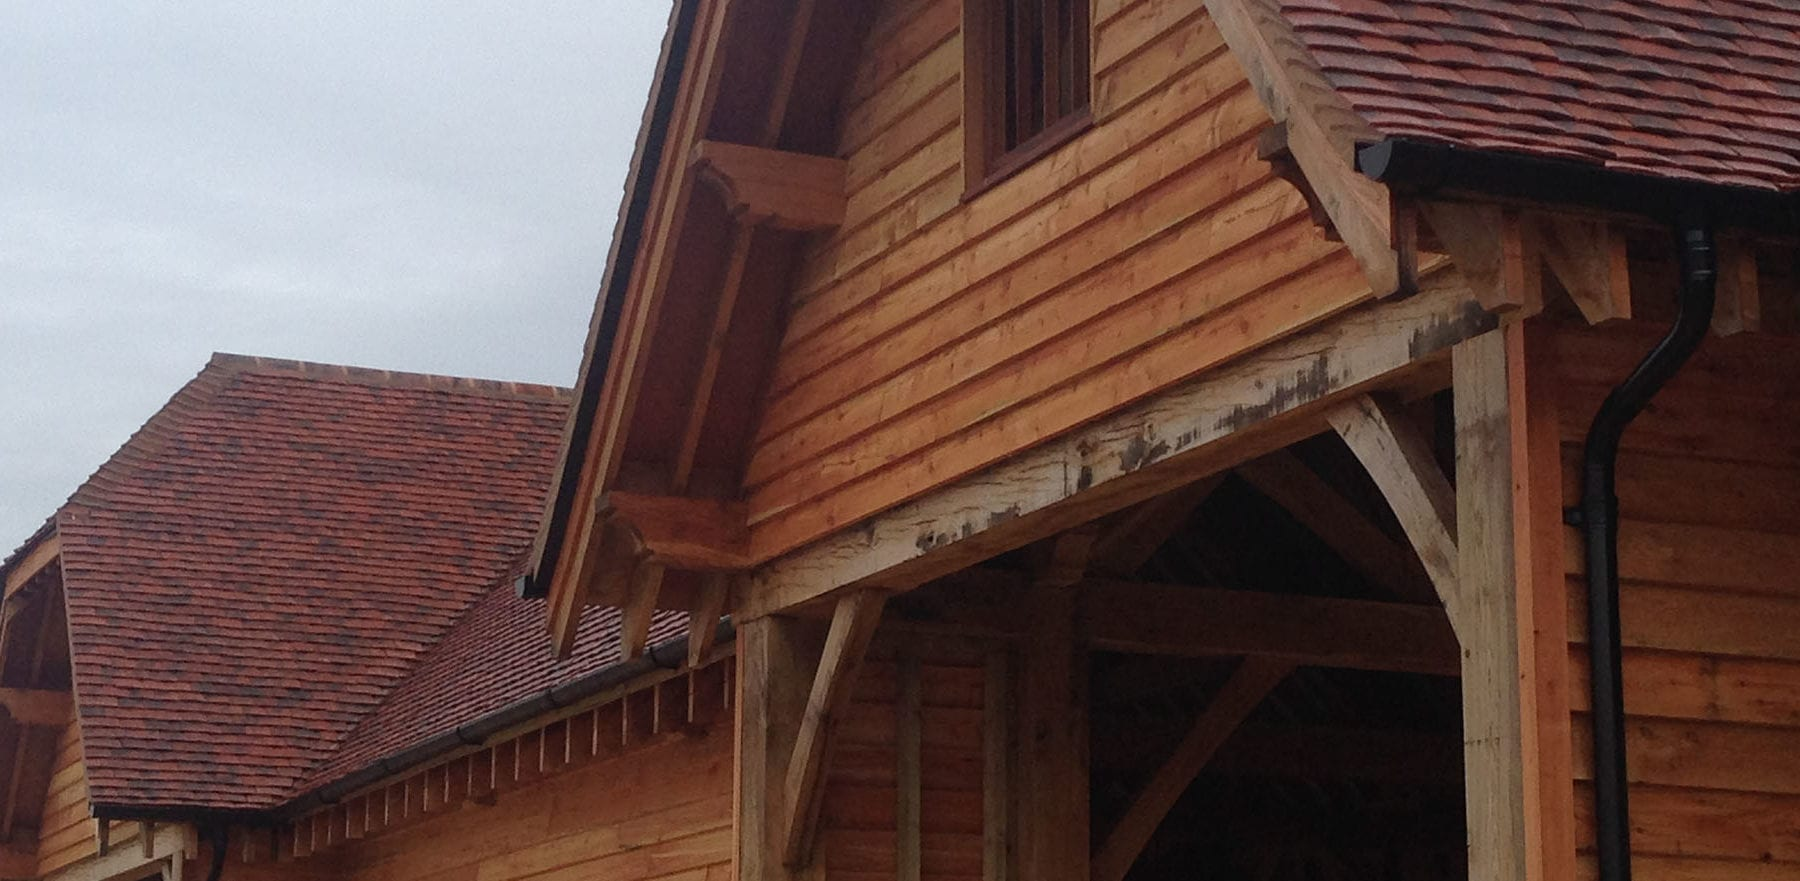 Lifestiles - Handmade Wiltshire Clay Roof Tiles - Oxford, England 5